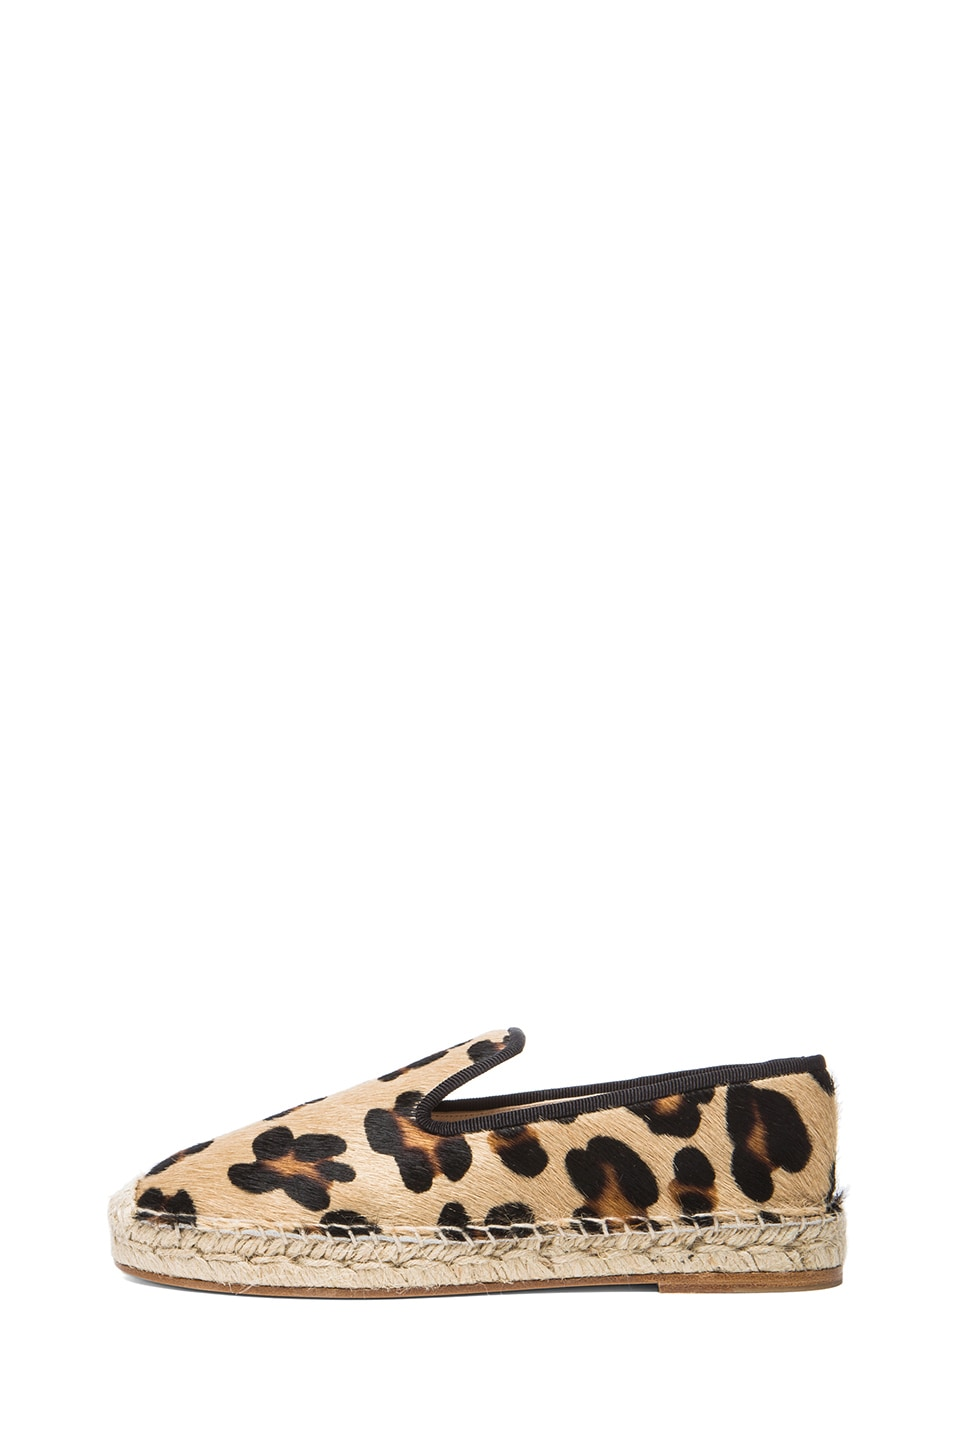 Image 1 of elysewalker los angeles Calf Hair Espadrilles in Leopard